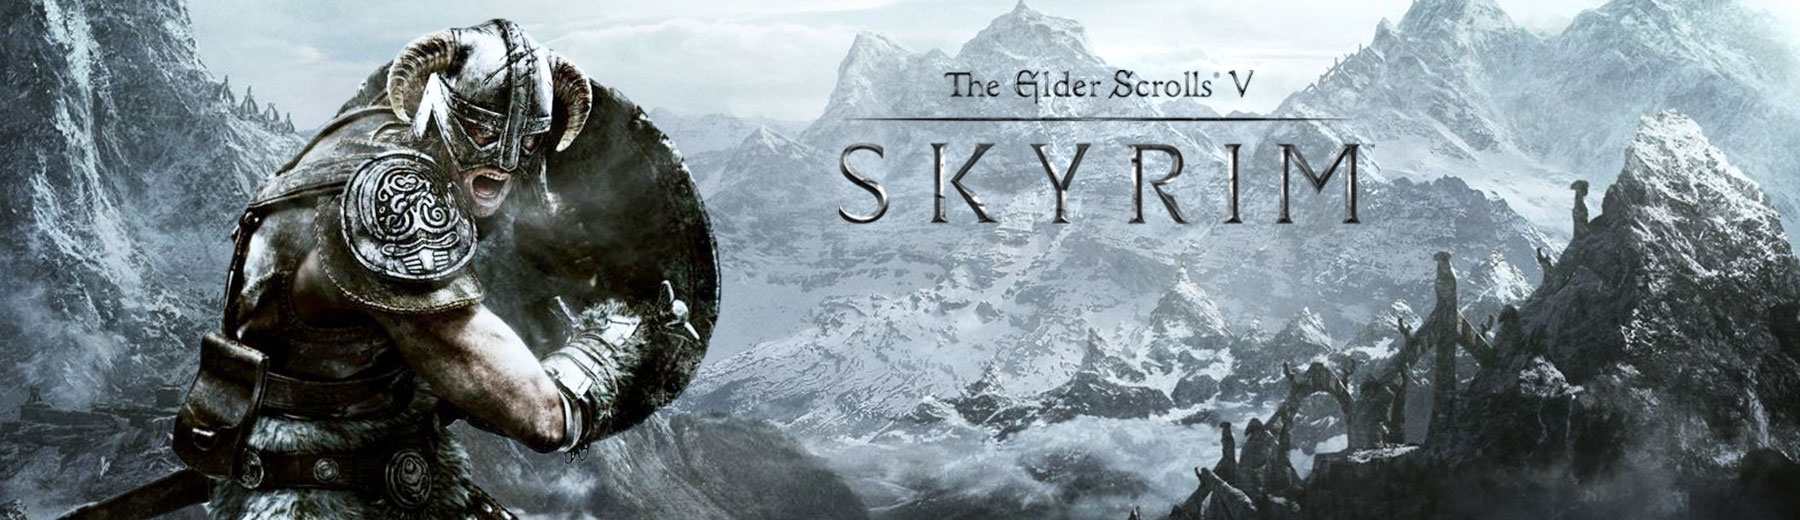 The Elder Scrolls - Skyrim